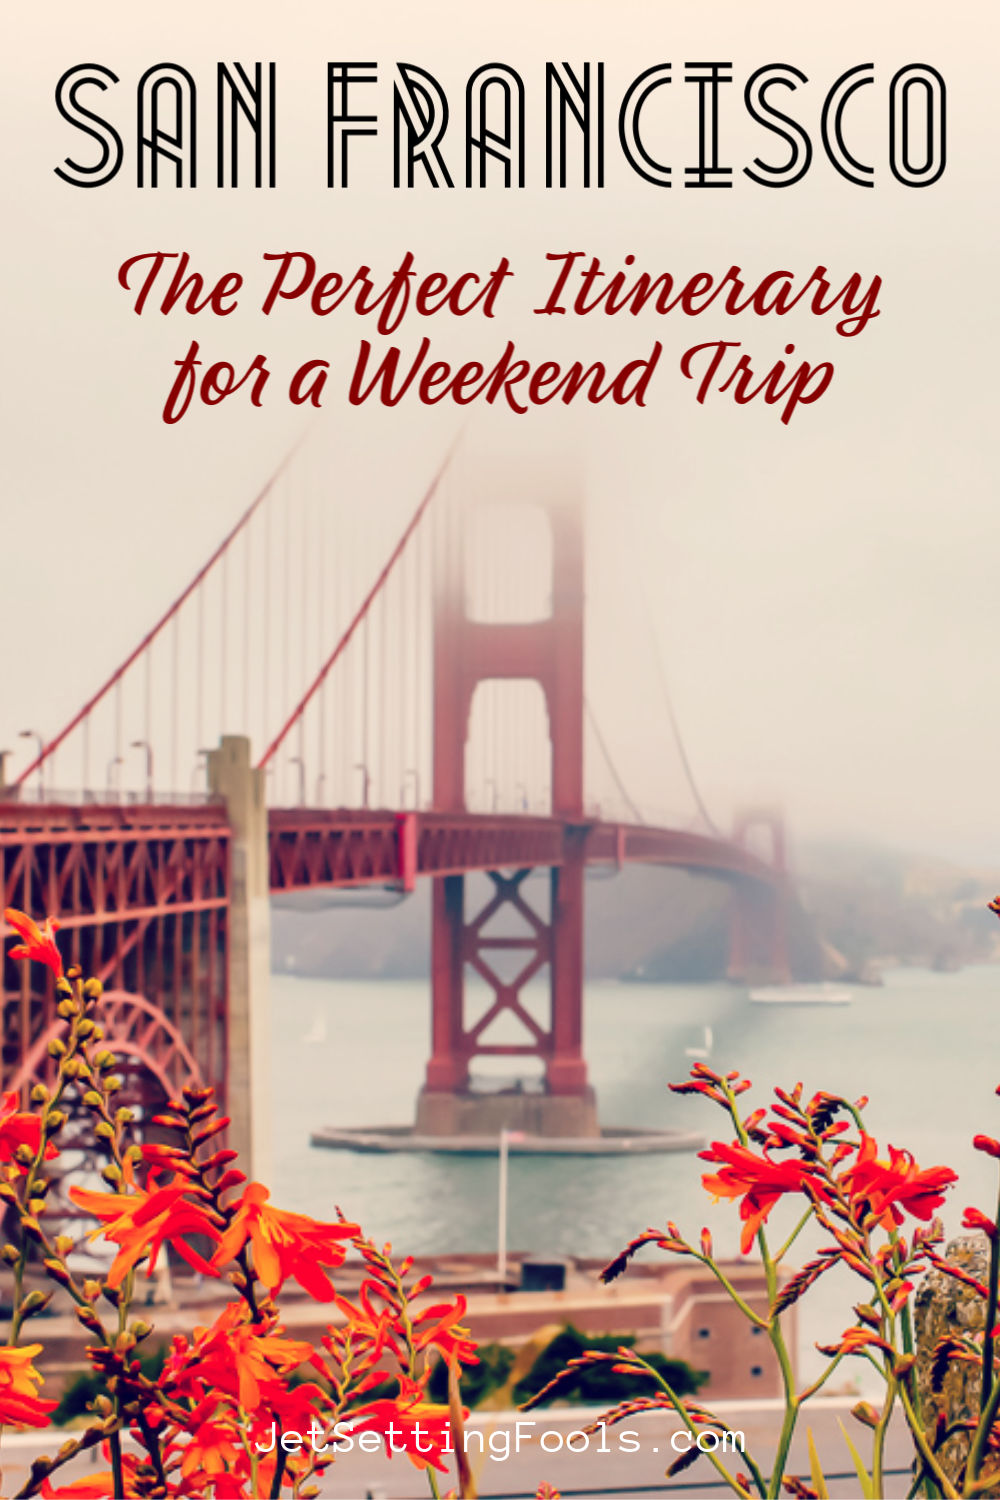 San Francisco Itinerary Weekend Trip by JetSettingFools.com